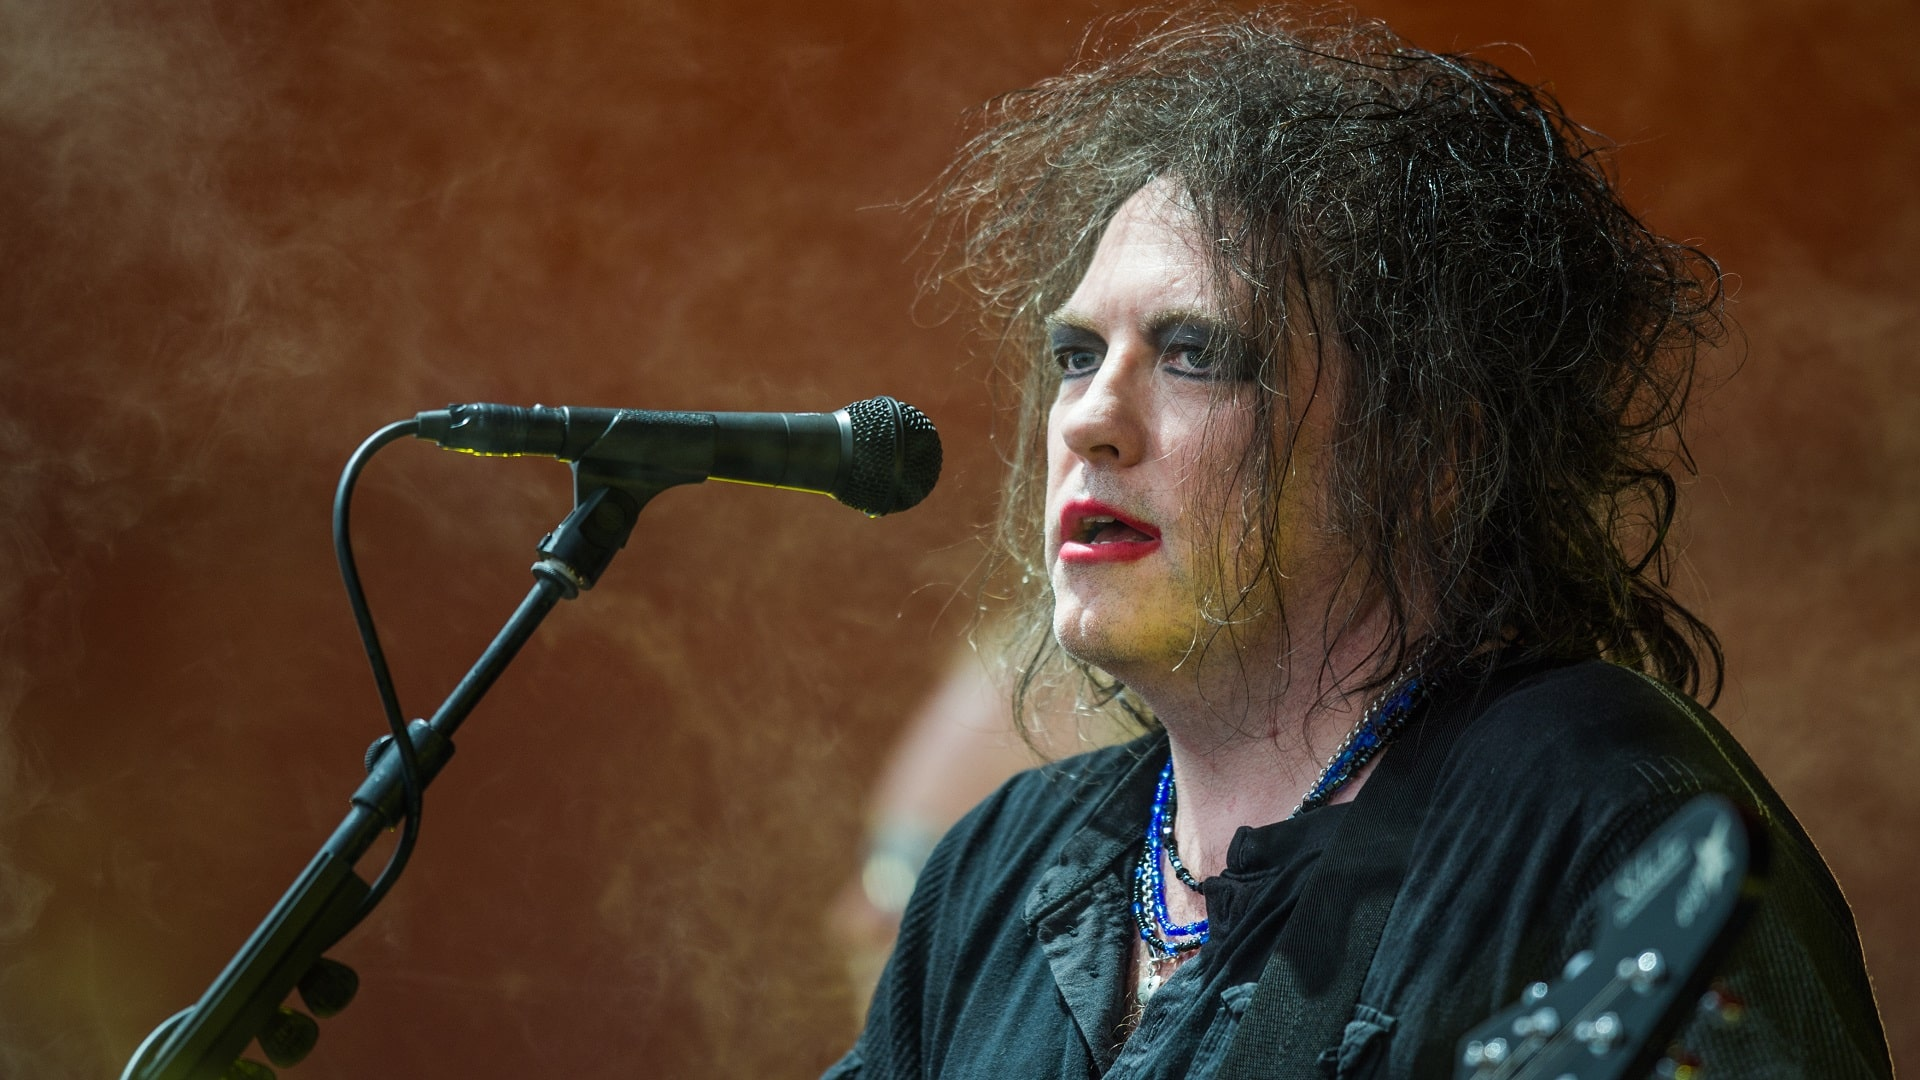 Andrés Salazar celebra los 61 años de Robert Smith con Covers de The Cure